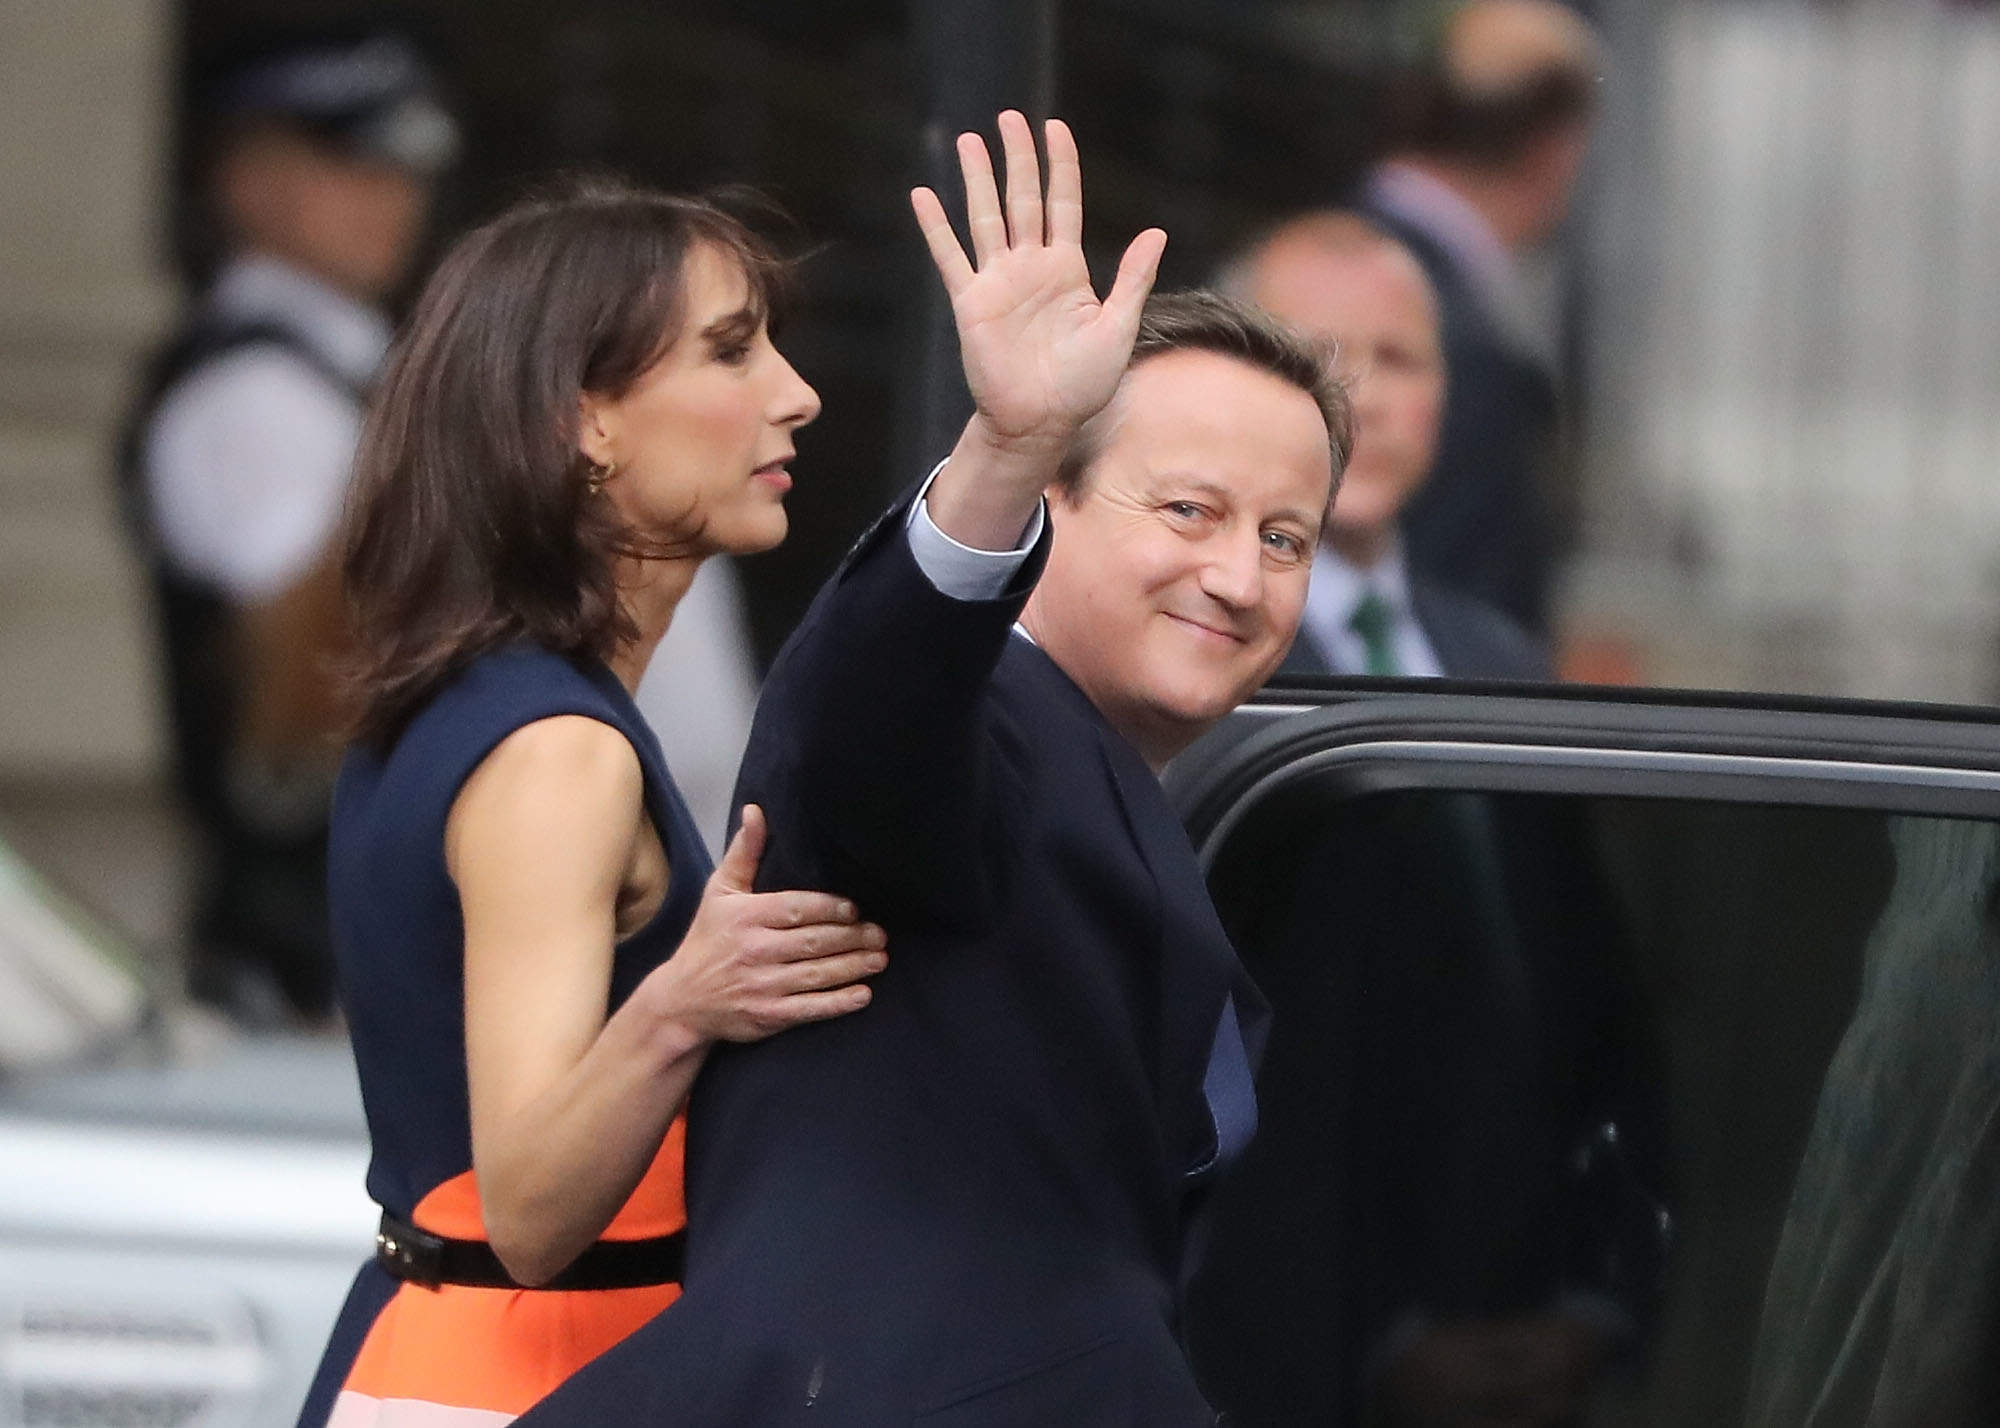 David Cameron yearned to modernise the Tory party but his legacy is one of chaos